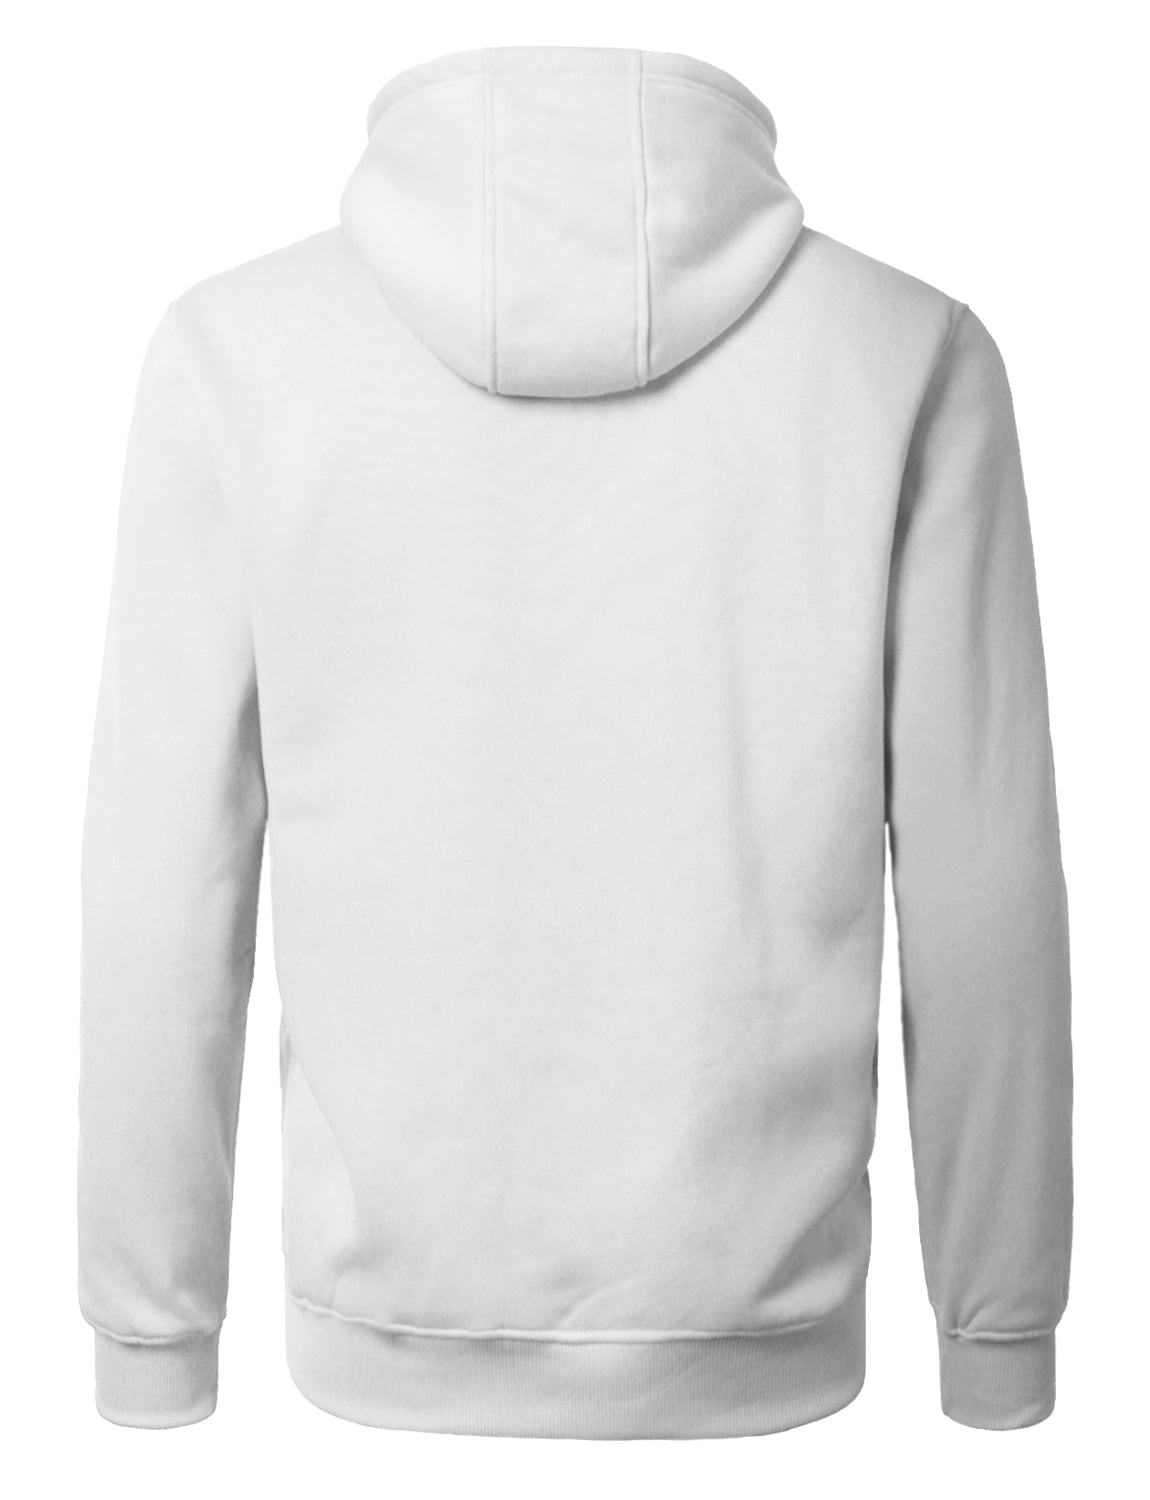 WHITE Basic Zip-Up Fleece Hoodie Jacket - URBANCREWS